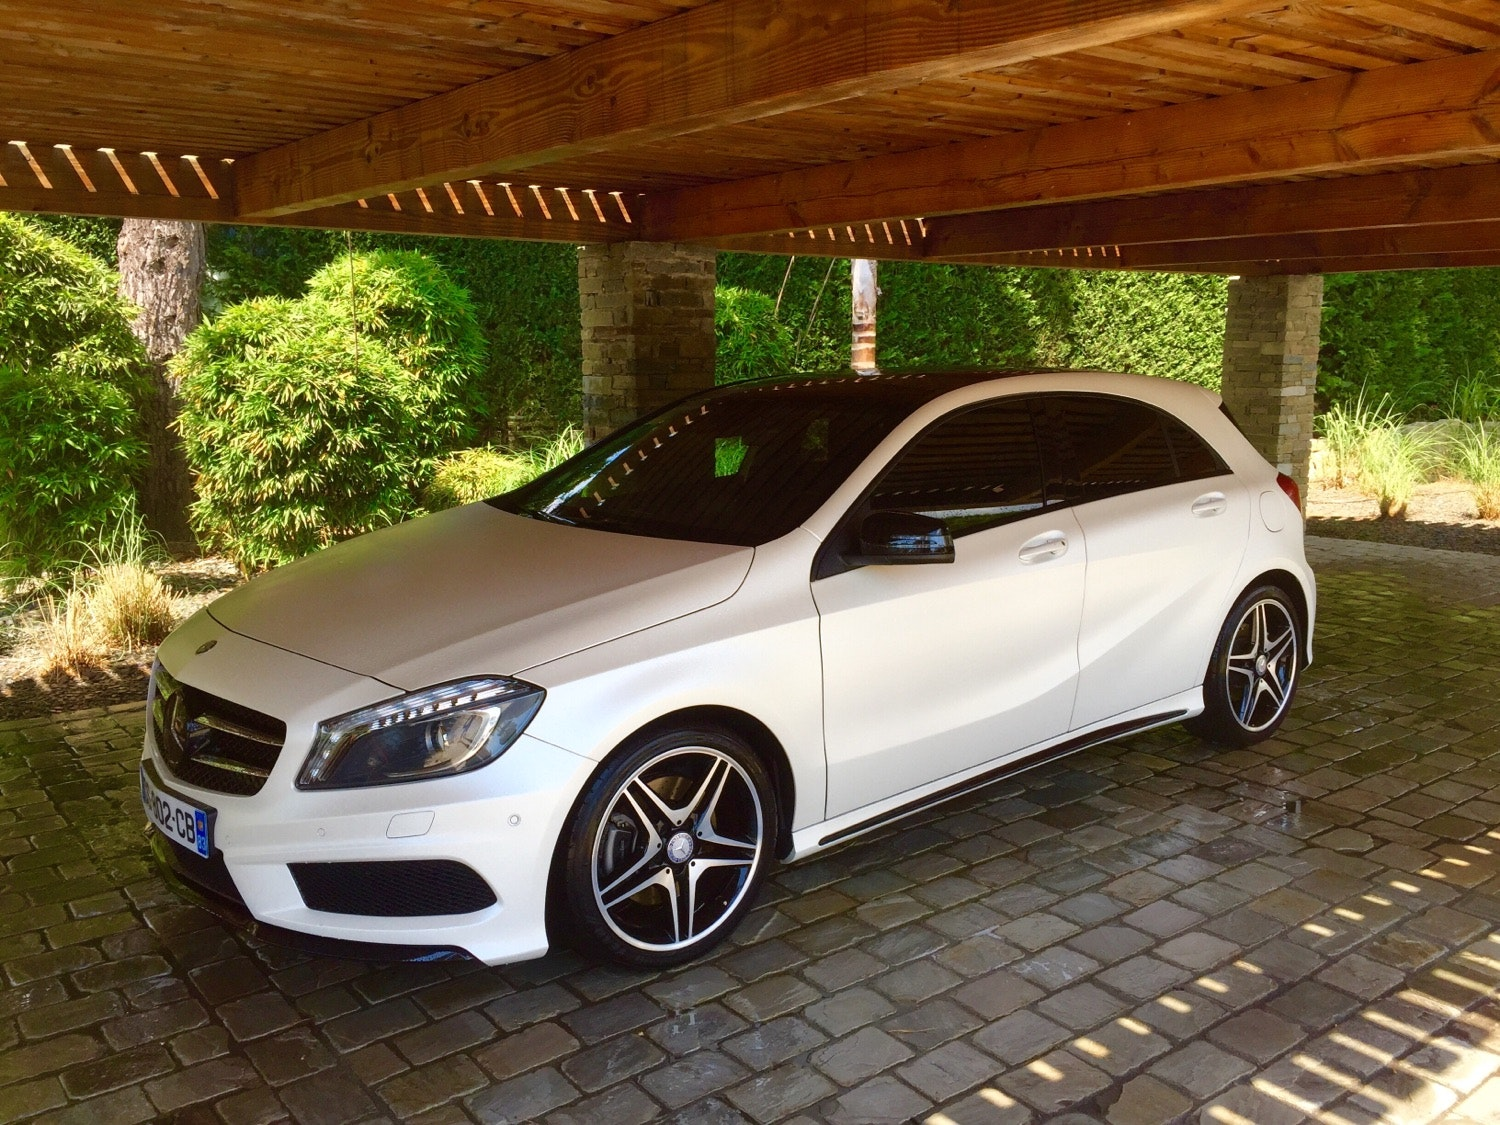 Mercedes Classe A 220 CDI AMG Fascination, 2013, Diesel, automatique